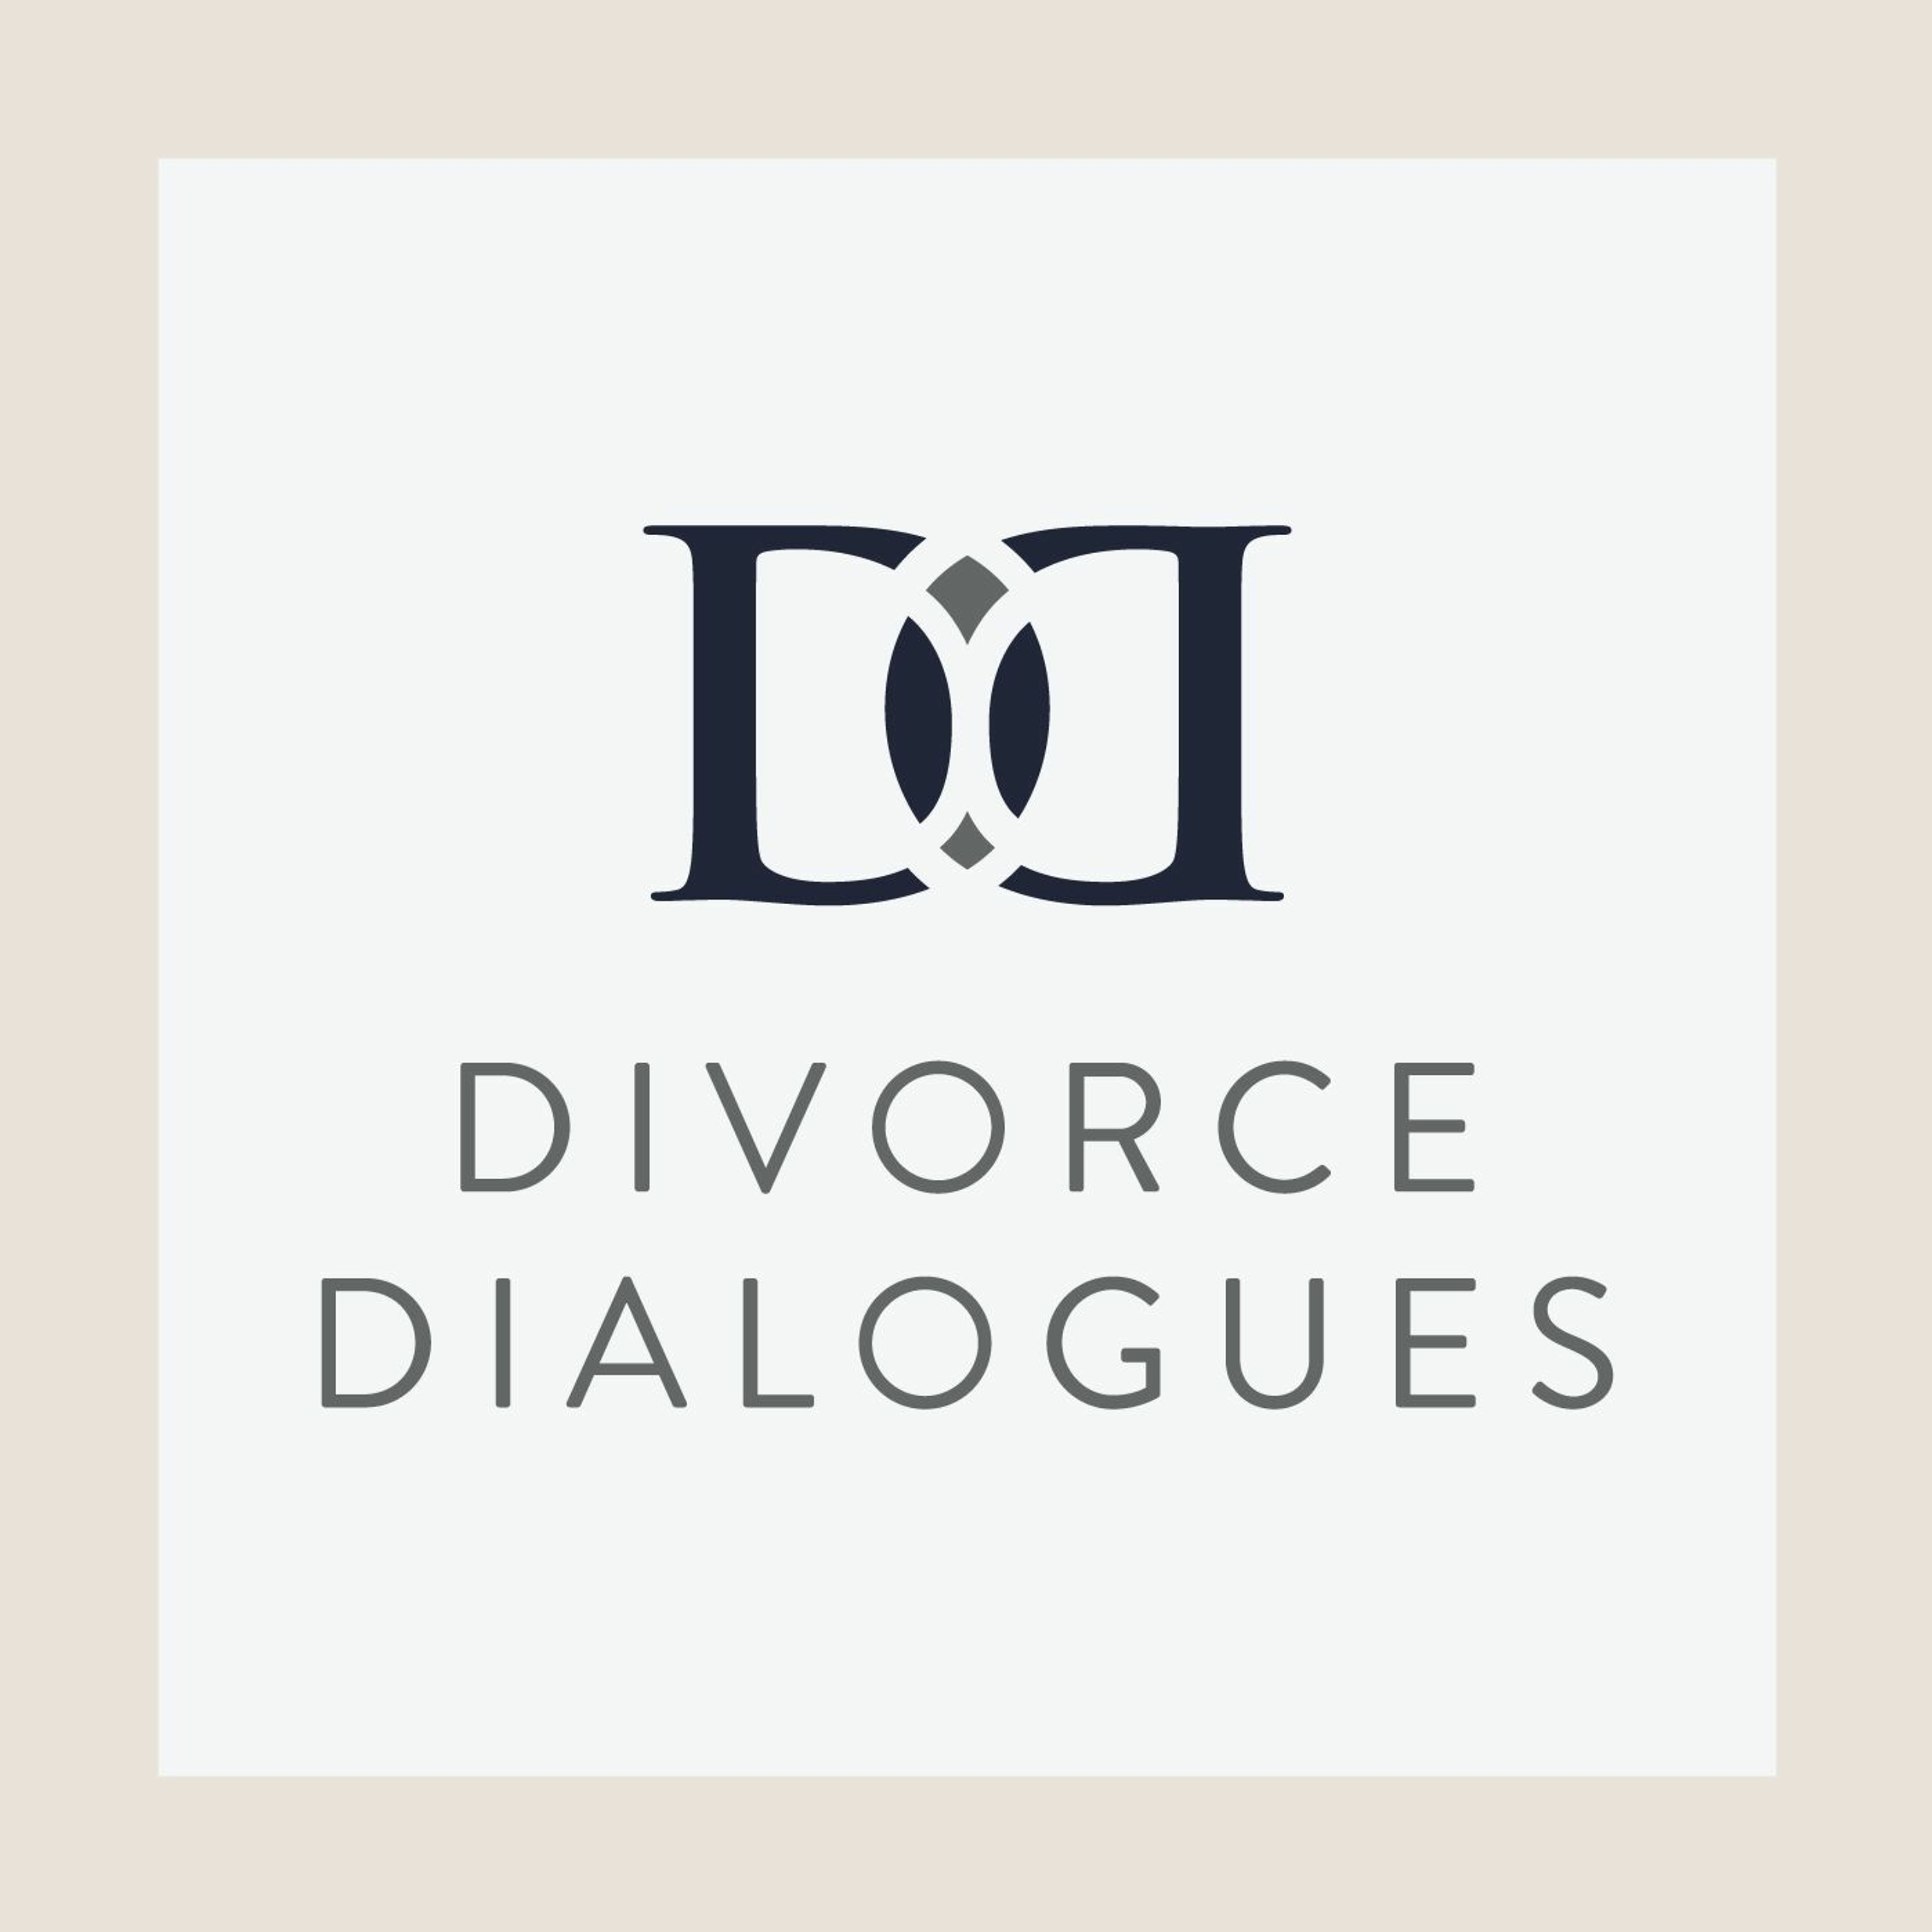 Divorce Dialogues - Prenuptial Agreements: A Framework for Conflict-Resolution with Mindy Utay